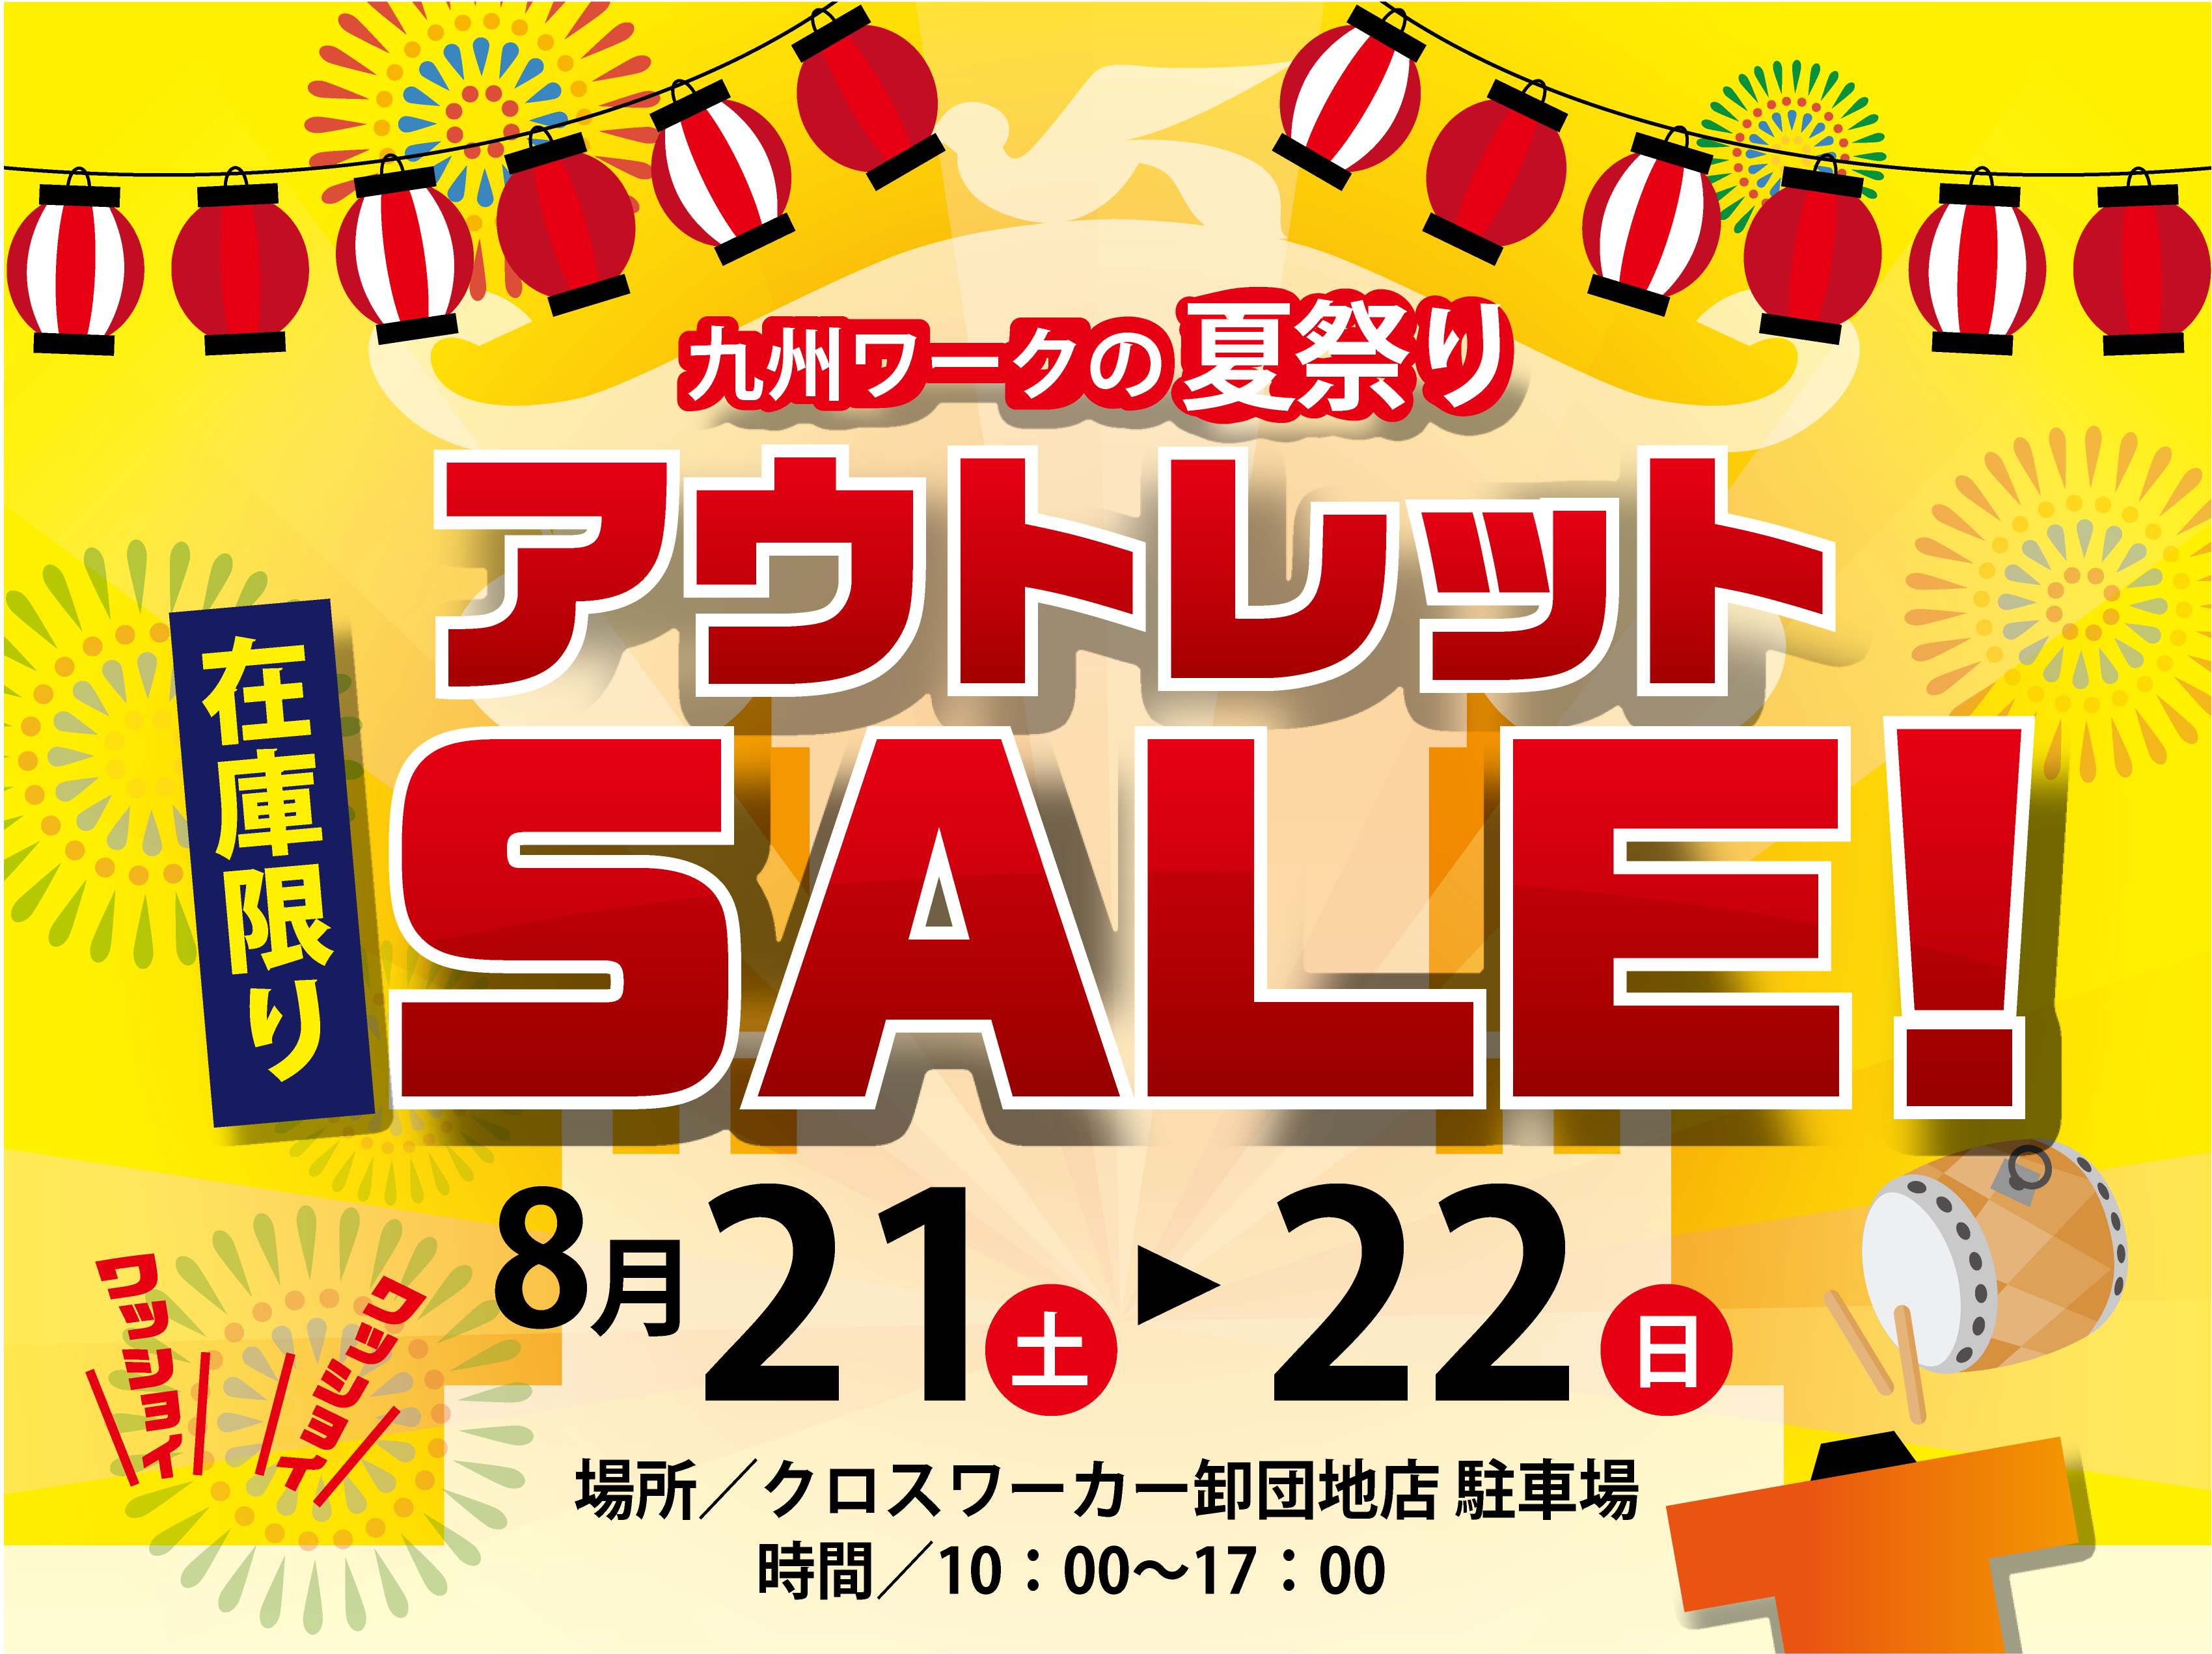 You are currently viewing 九州ワークの夏祭り開催決定★最大90%オフ!在庫限りのアウトレットSALE!!